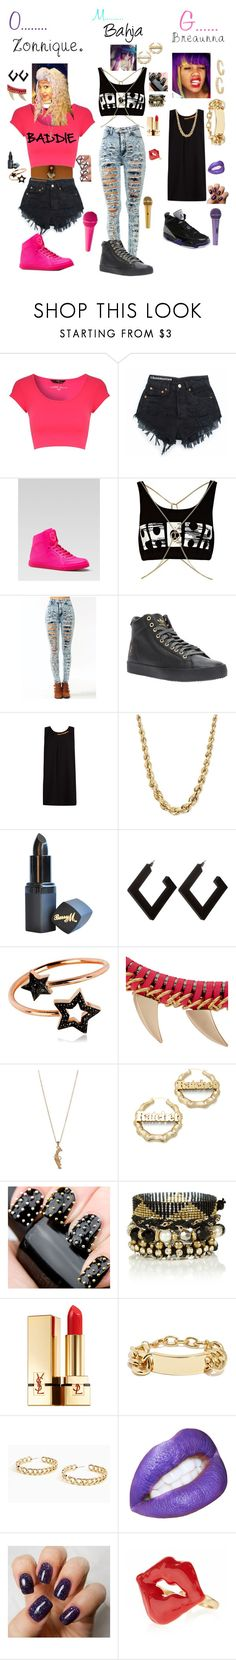 """"""""""" by babiegurlduce ❤ liked on Polyvore featuring Jane Norman, Gucci, Nicki Minaj, River Island, MANGO, Barry M, PERLOTA, Style Tryst, Melody Ehsani and Yves Saint Laurent"""